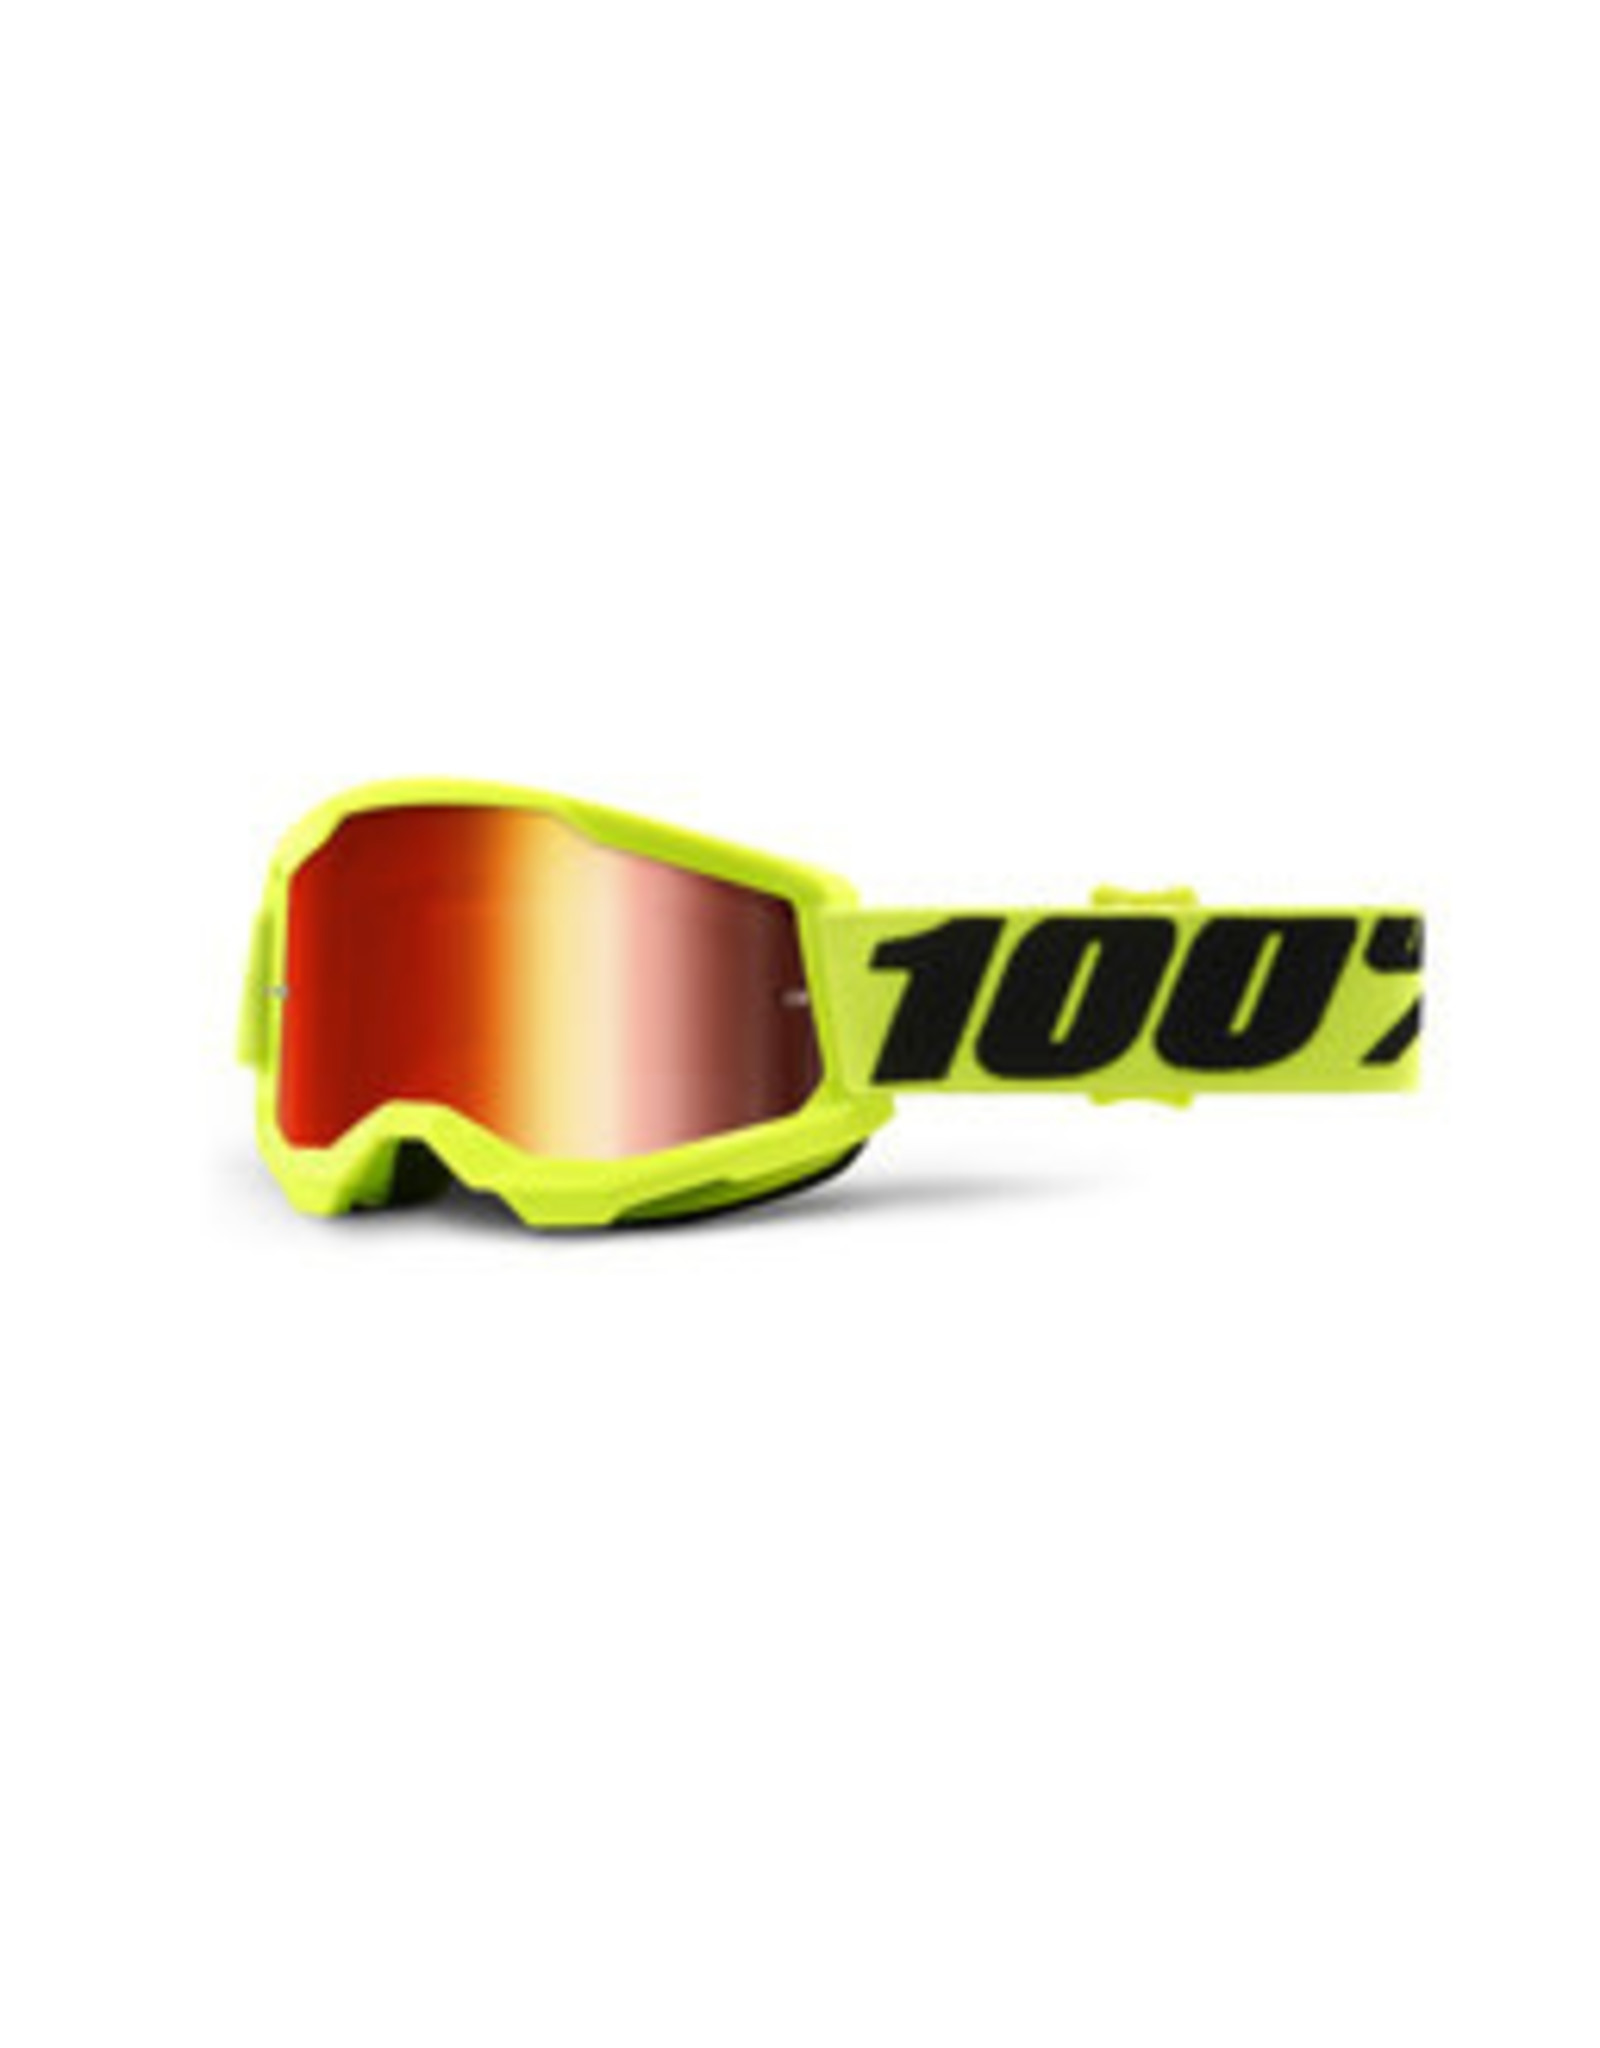 100% 100% YOUTH STRATA 2 MIRROR LENS YELLOW GOGGLES